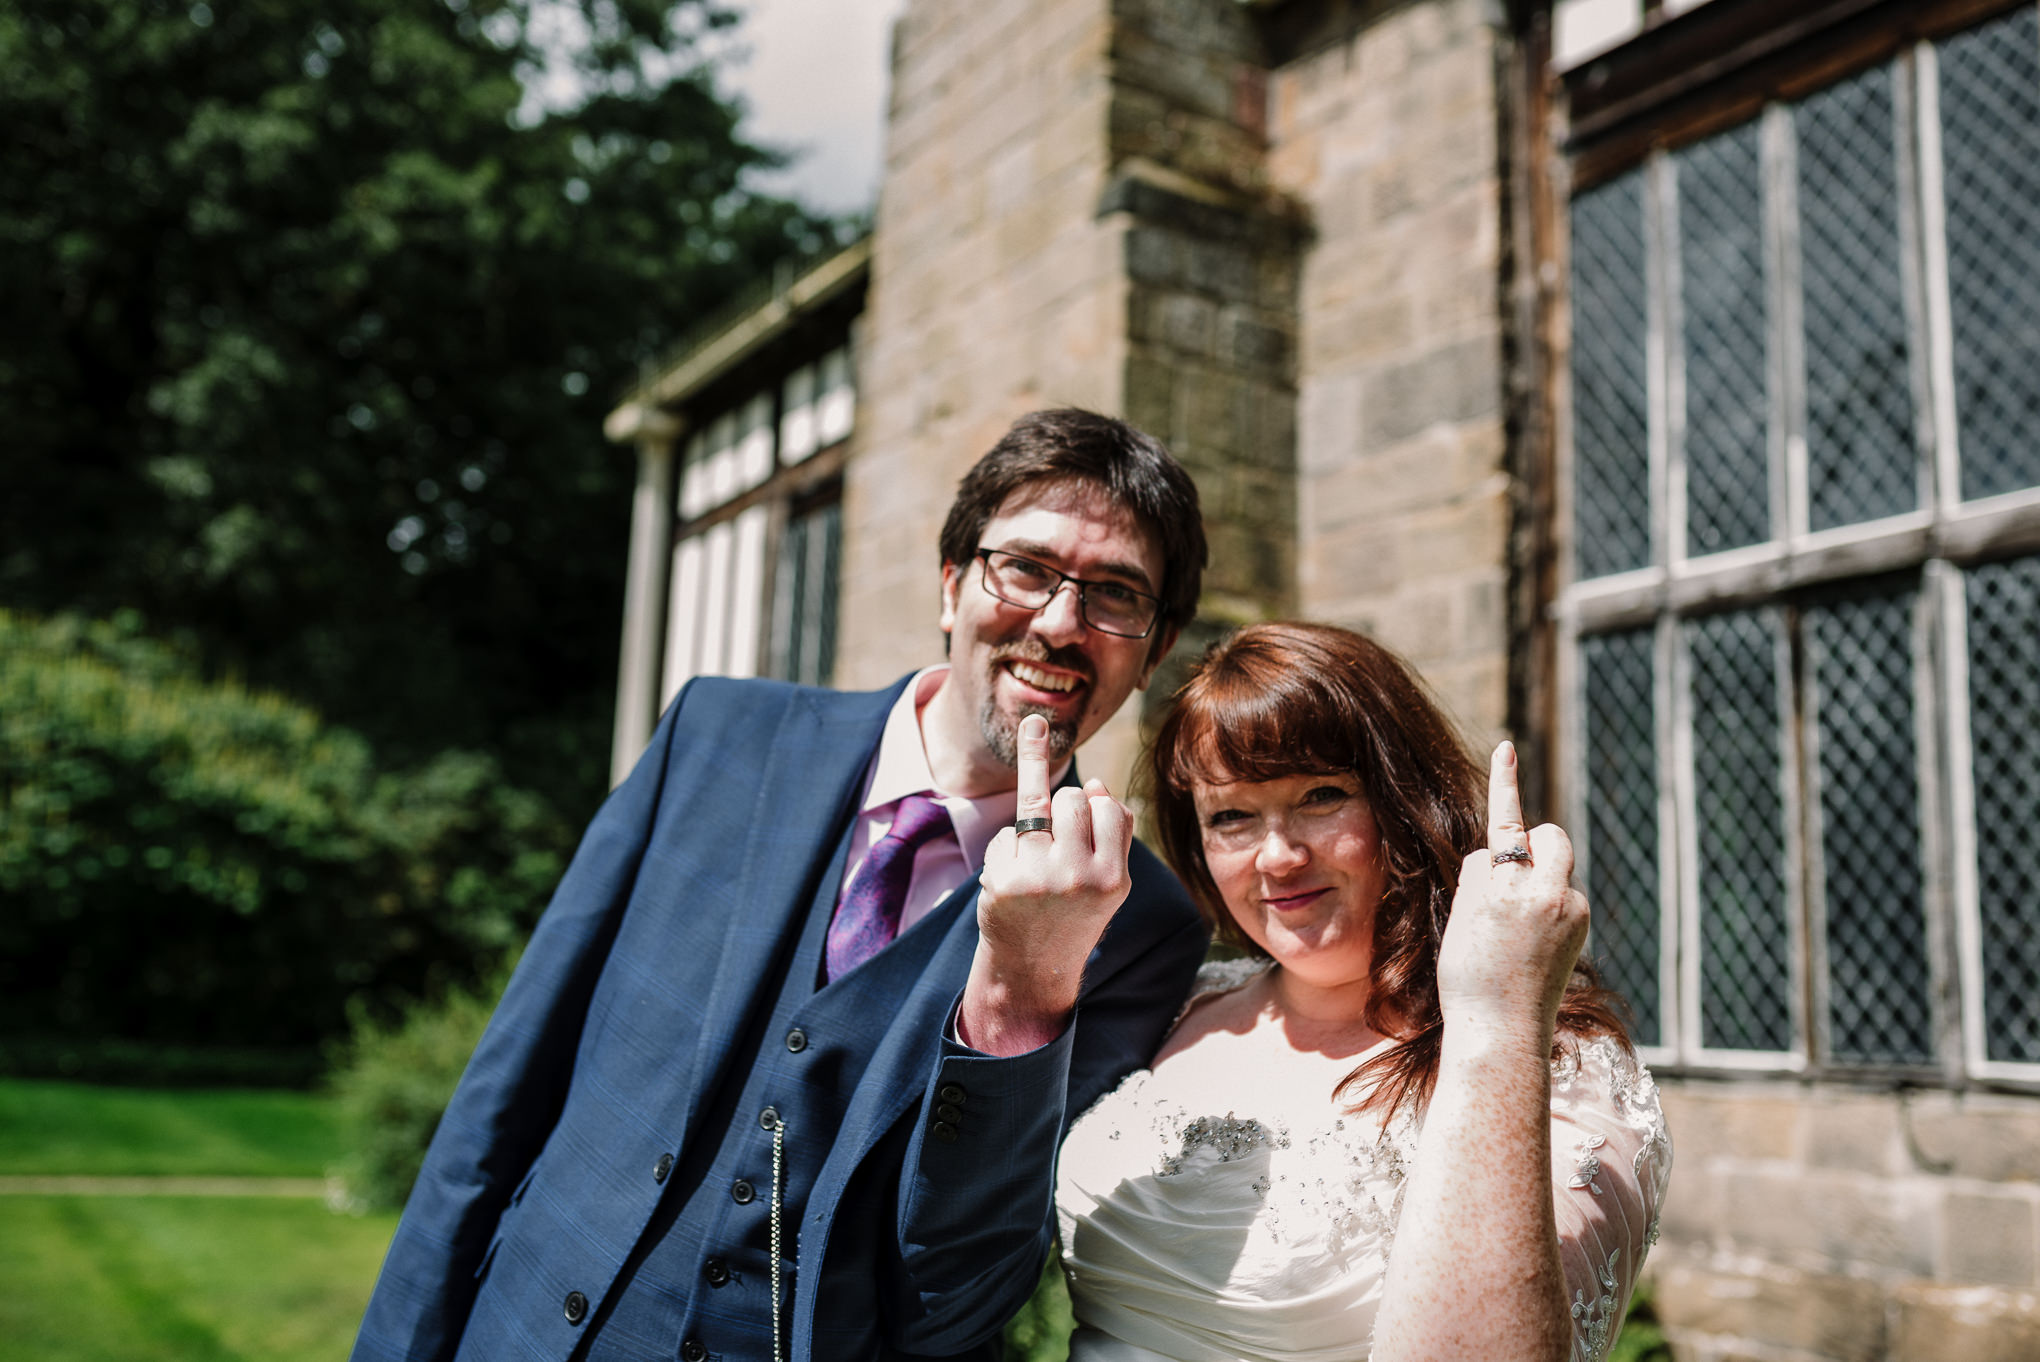 Fun shot of bride and groom showing wedding rings. Lancashire wedding photography.